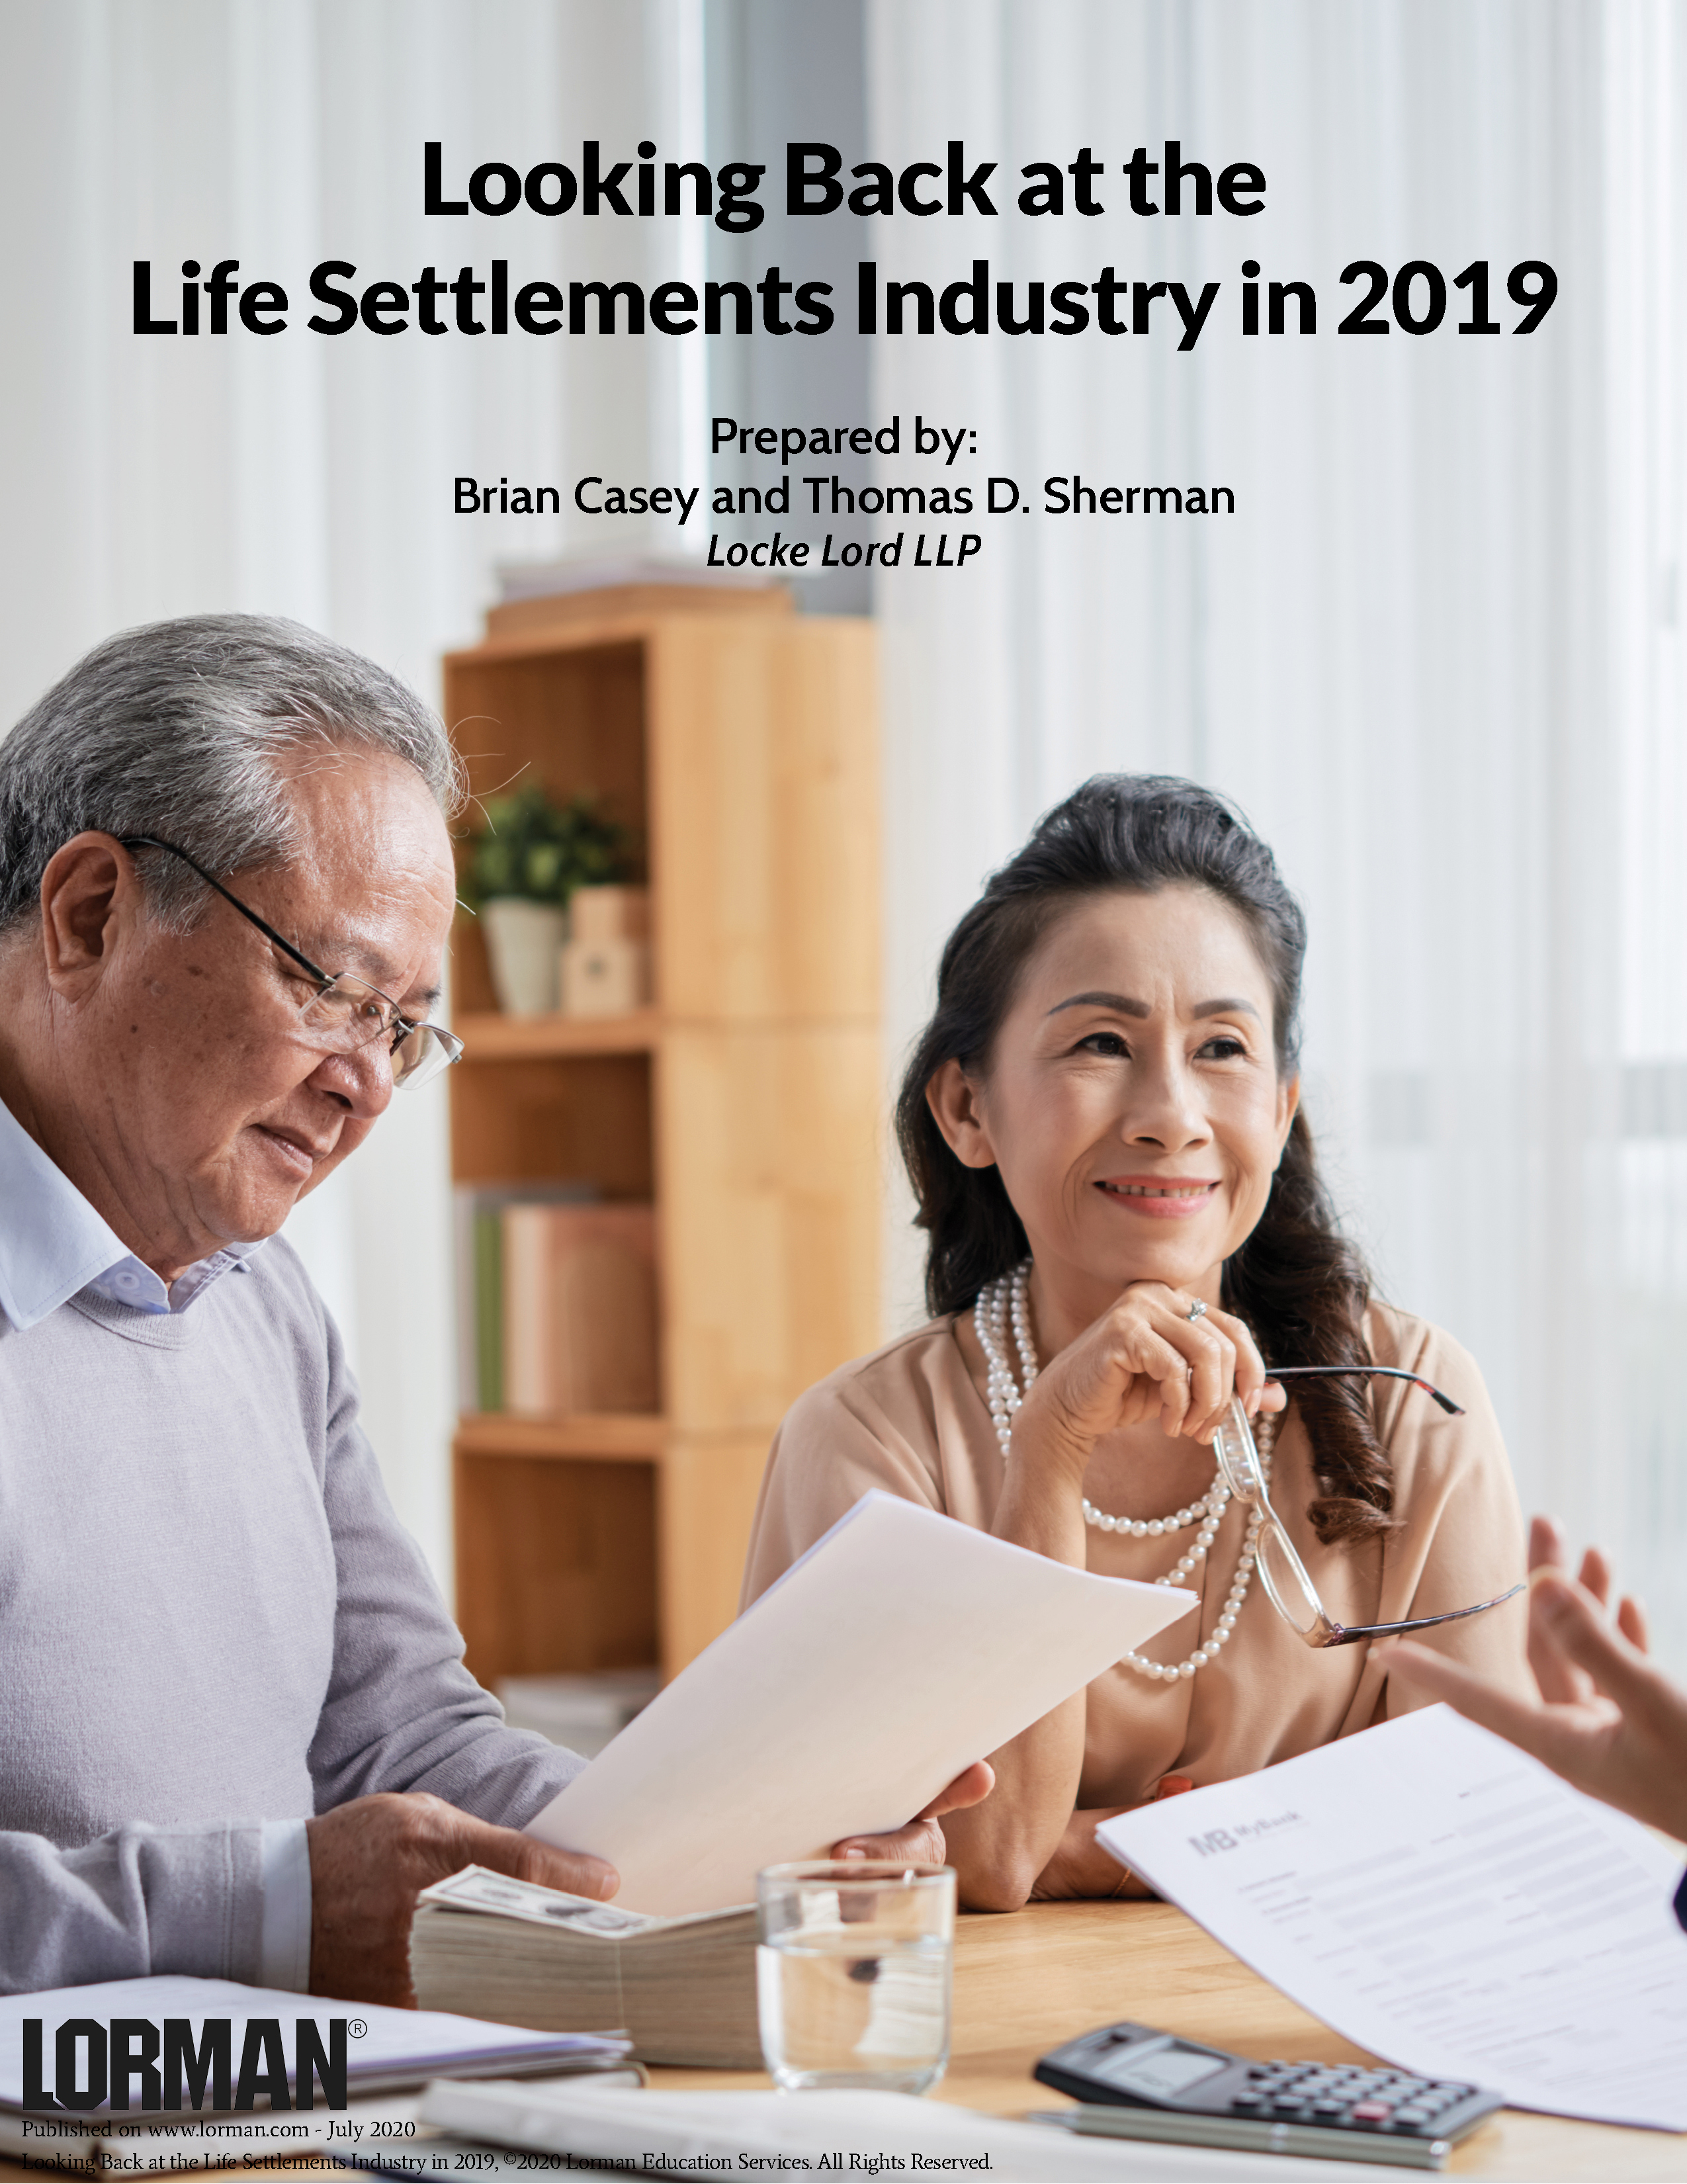 Looking Back at the Life Settlements Industry in 2019